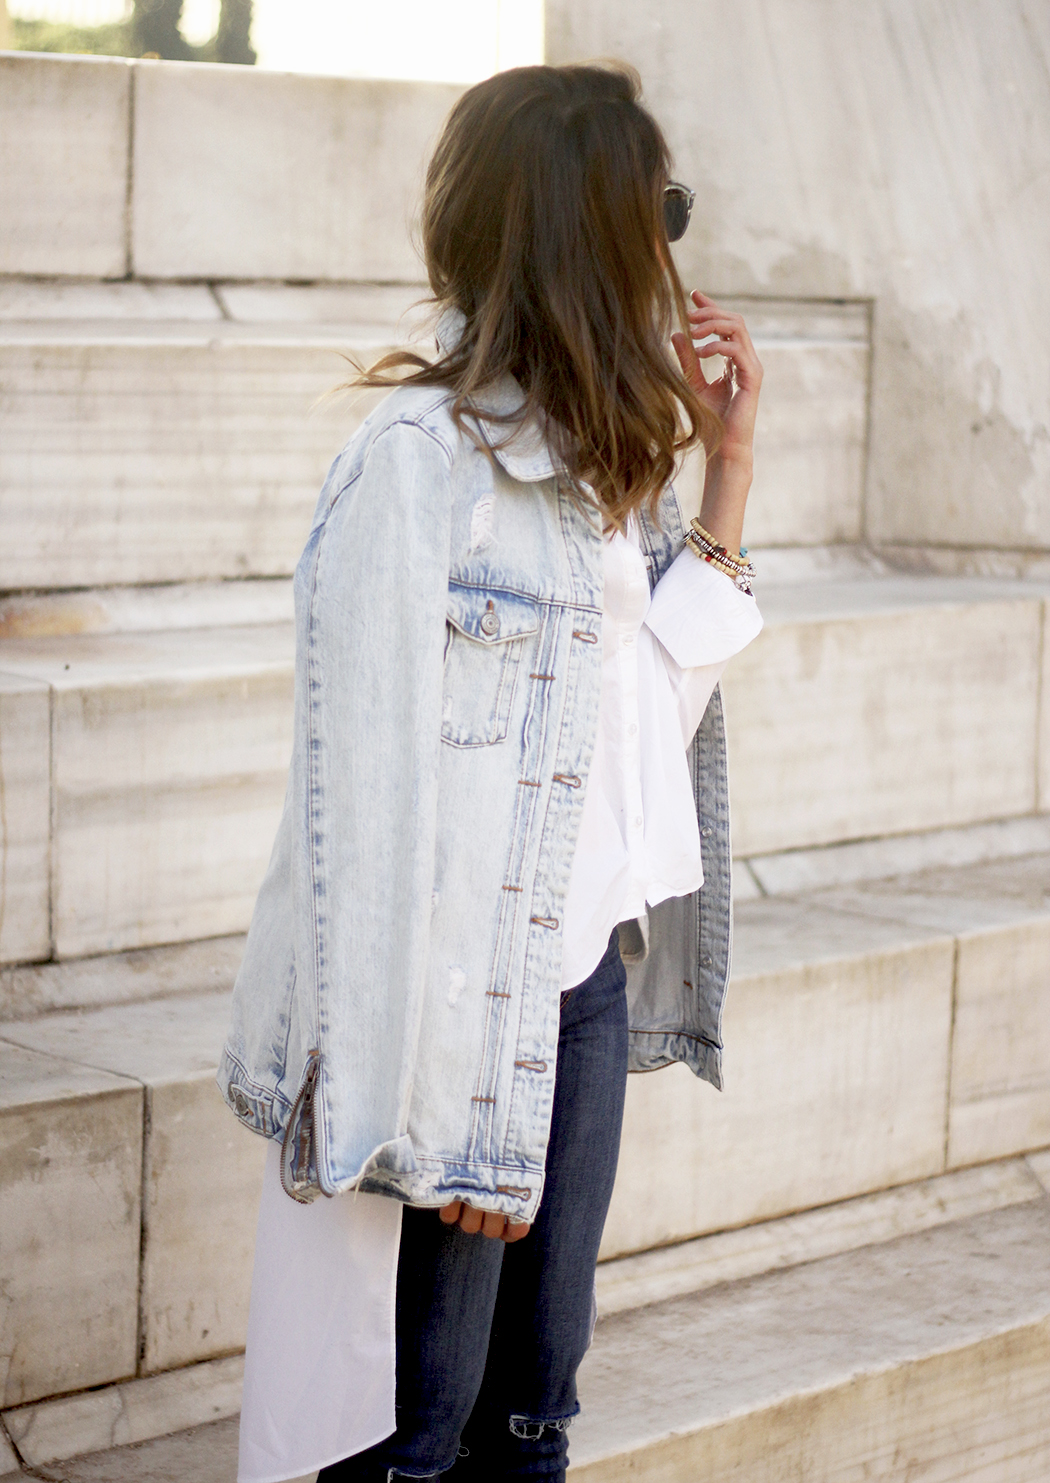 Denim Jacket Jeans White Shirt Black Heels outfit02